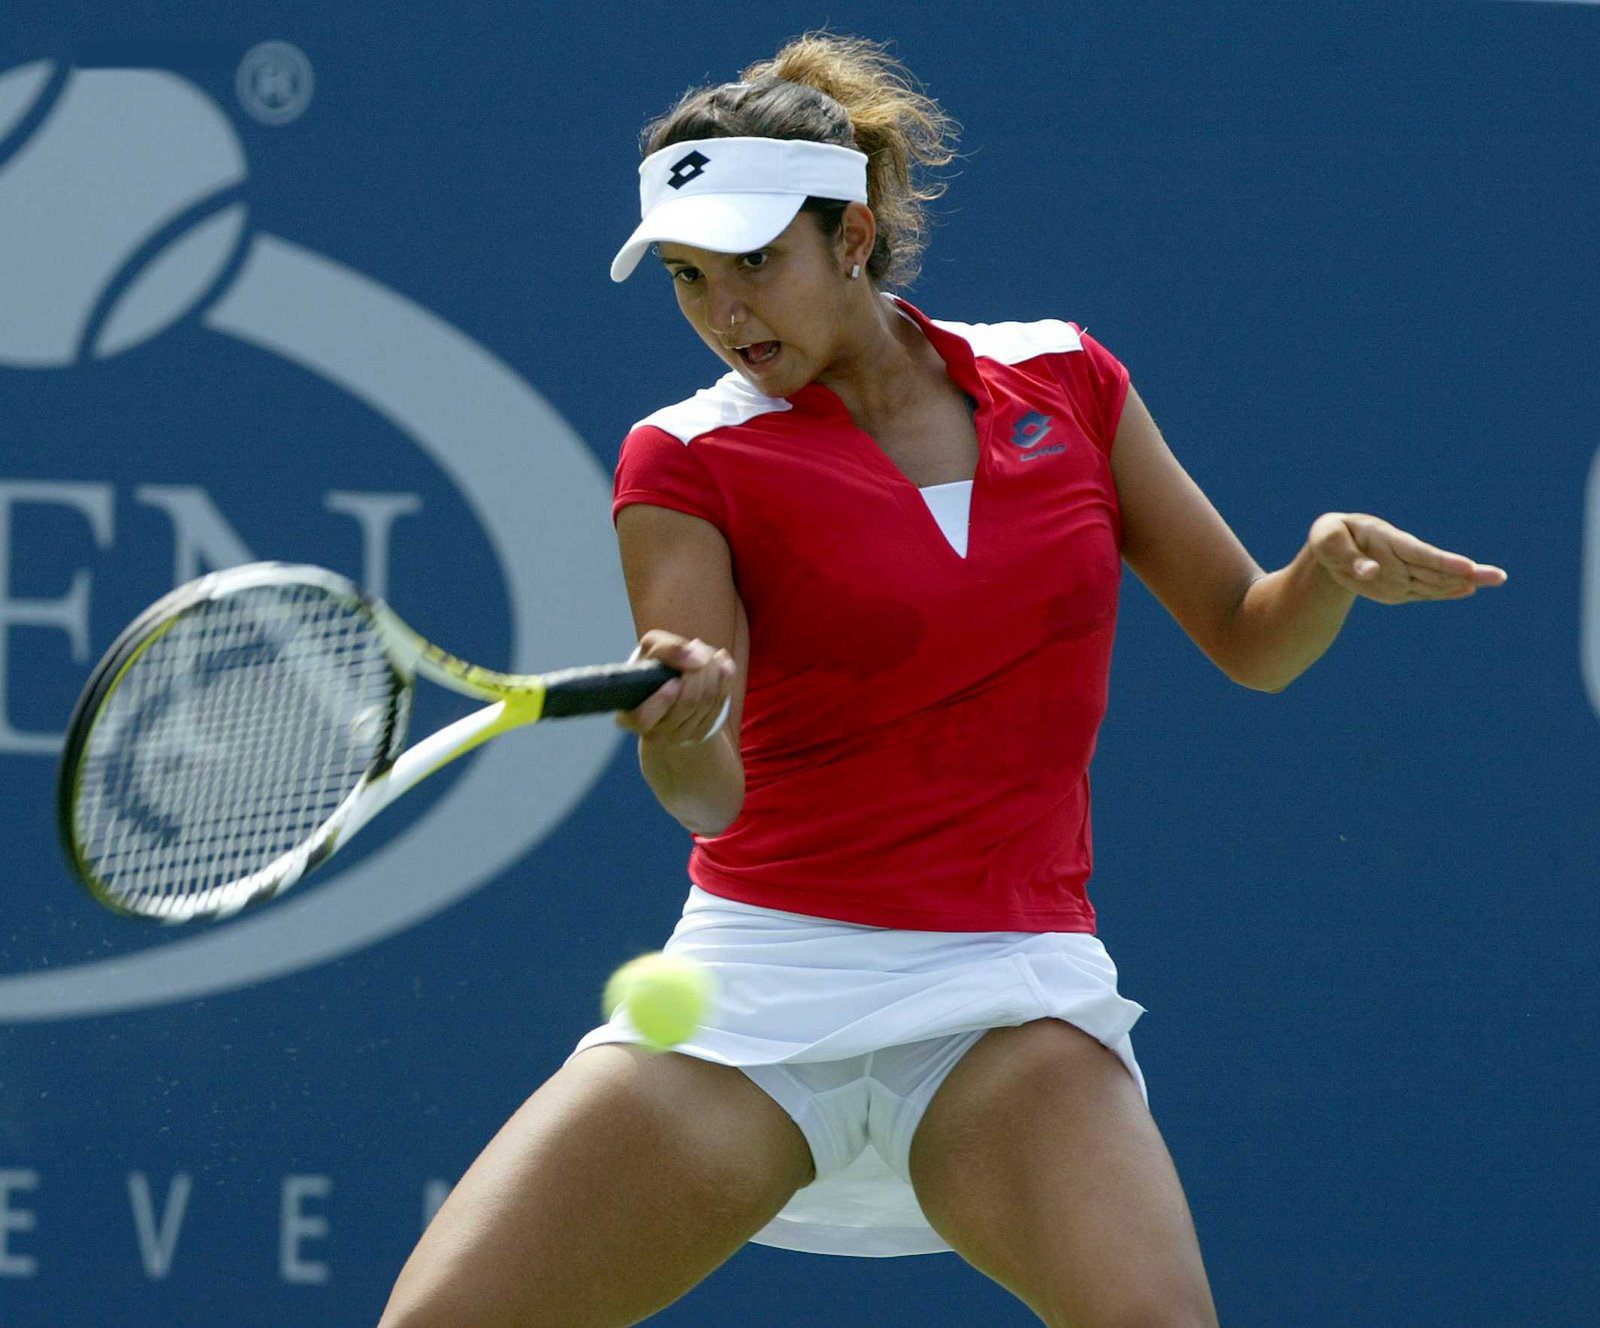 All Wallpapers: Sania Mirza hd Hot Wallpapers 2013